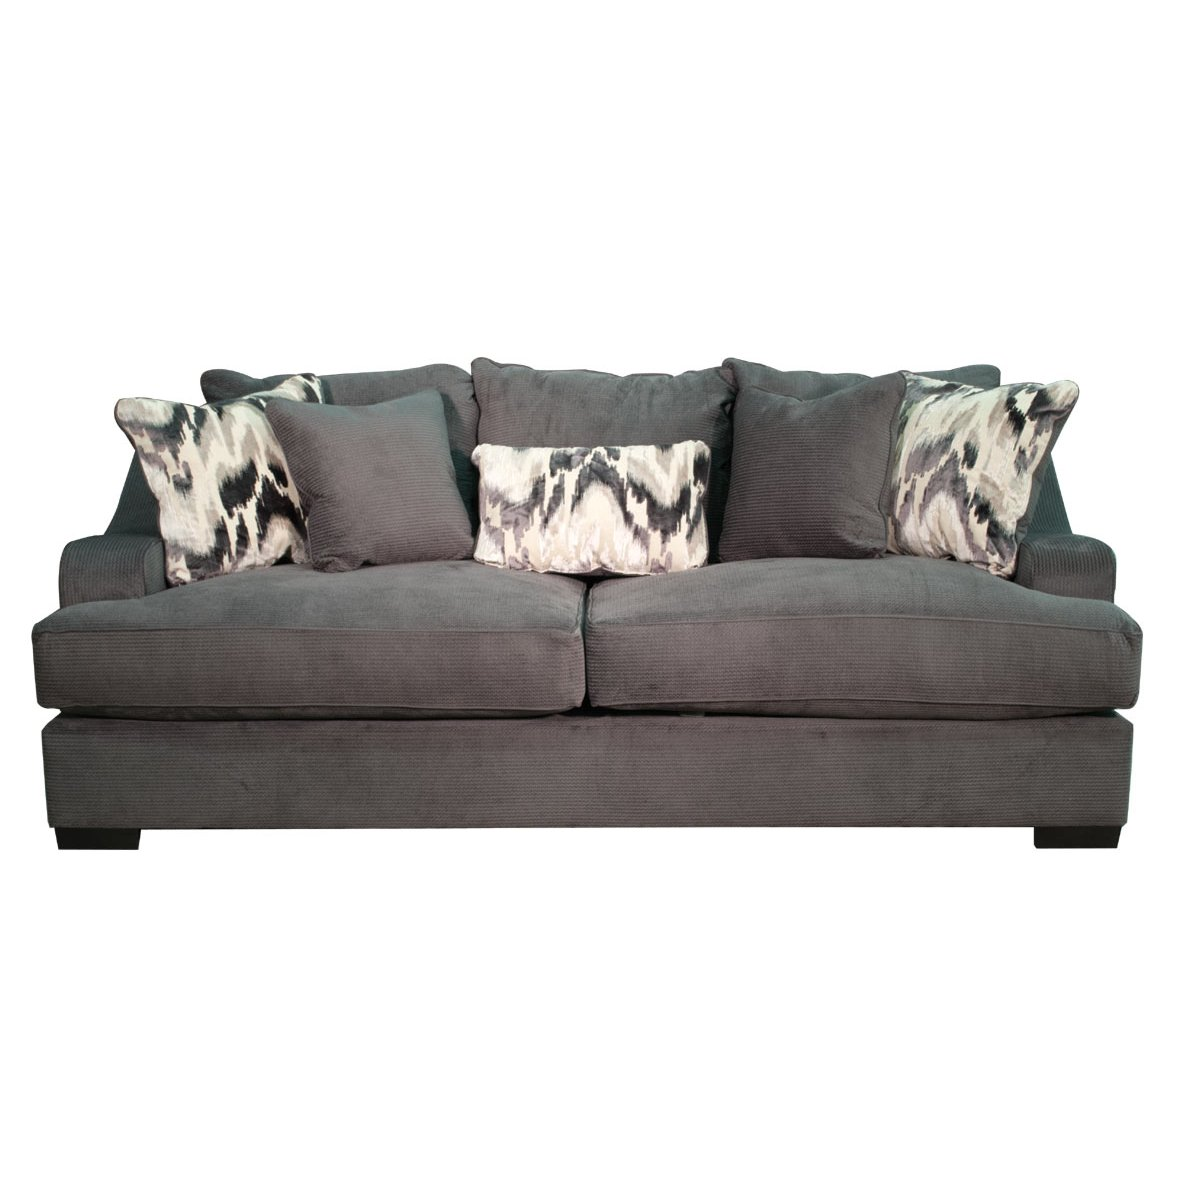 Sofa Express Locations Shop Sofas Furniture Store Rc Willey